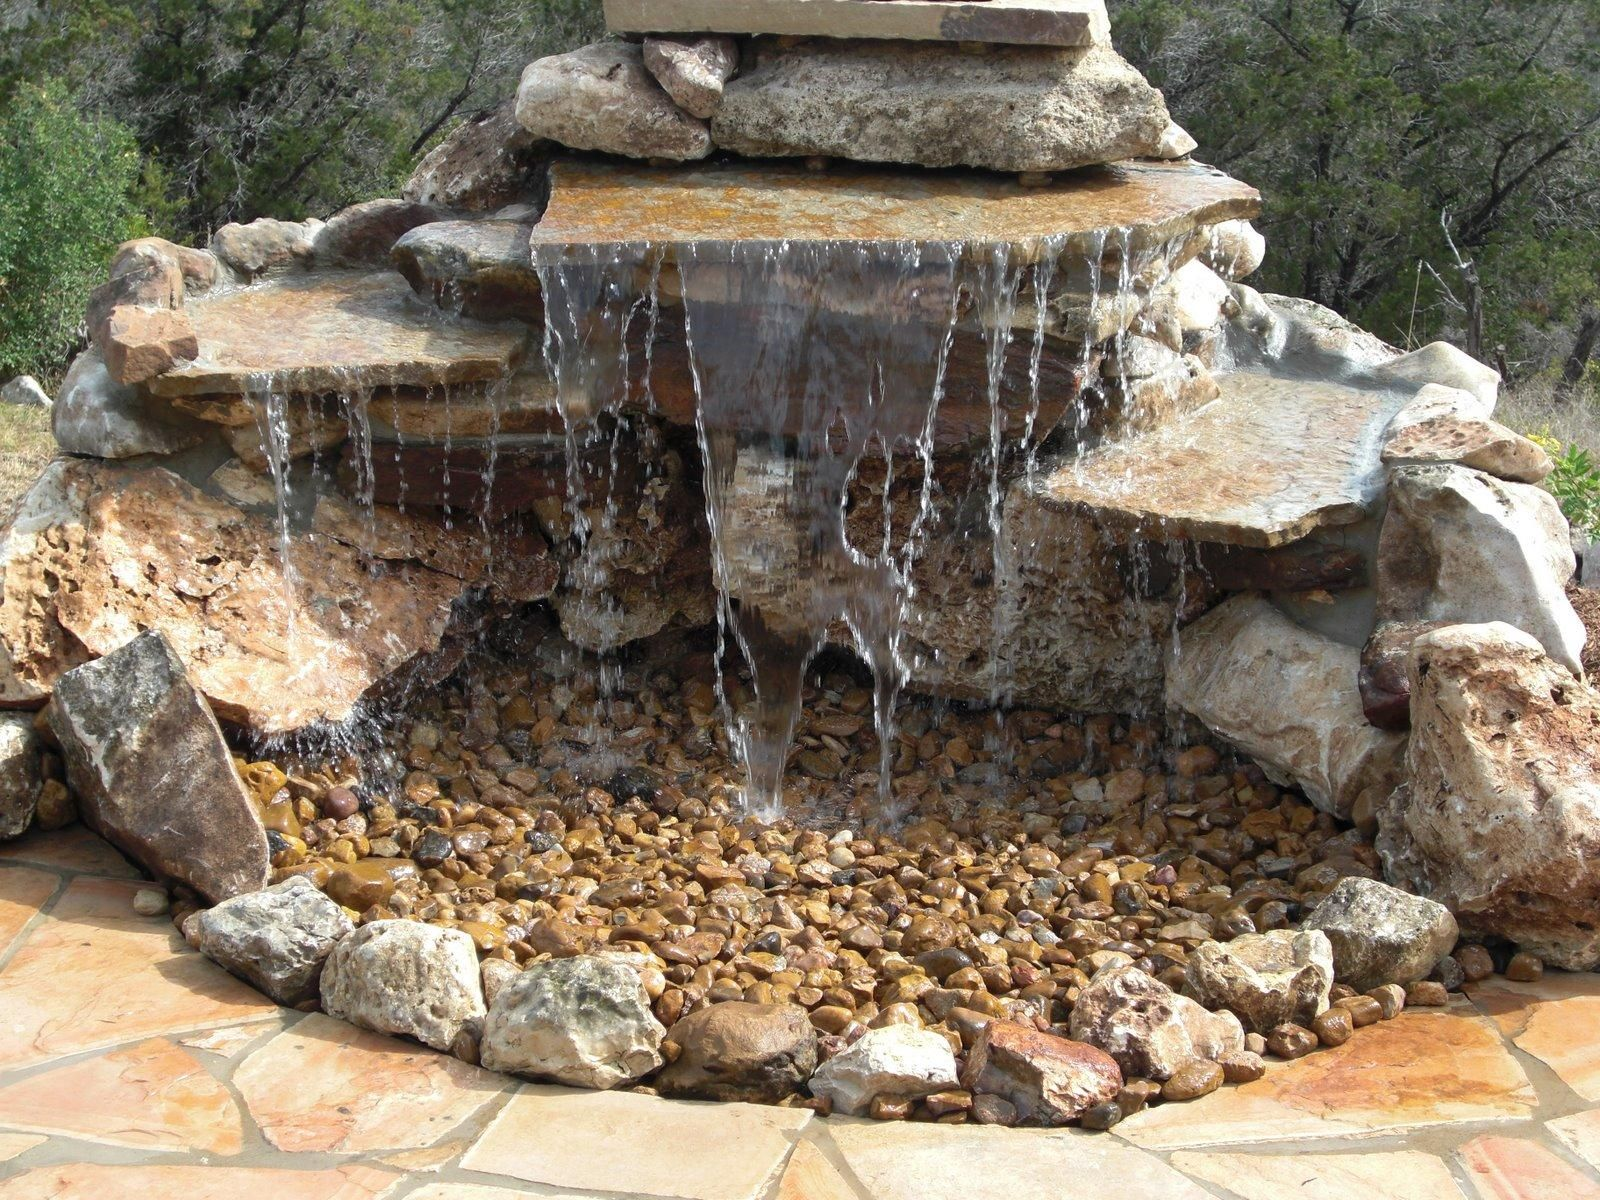 Diy Garden Fountain Diy Pond Less Waterfall This Would Make A Great Bird Bath Too For Hummingb Waterfalls Backyard Diy Garden Fountains Backyard Water Feature